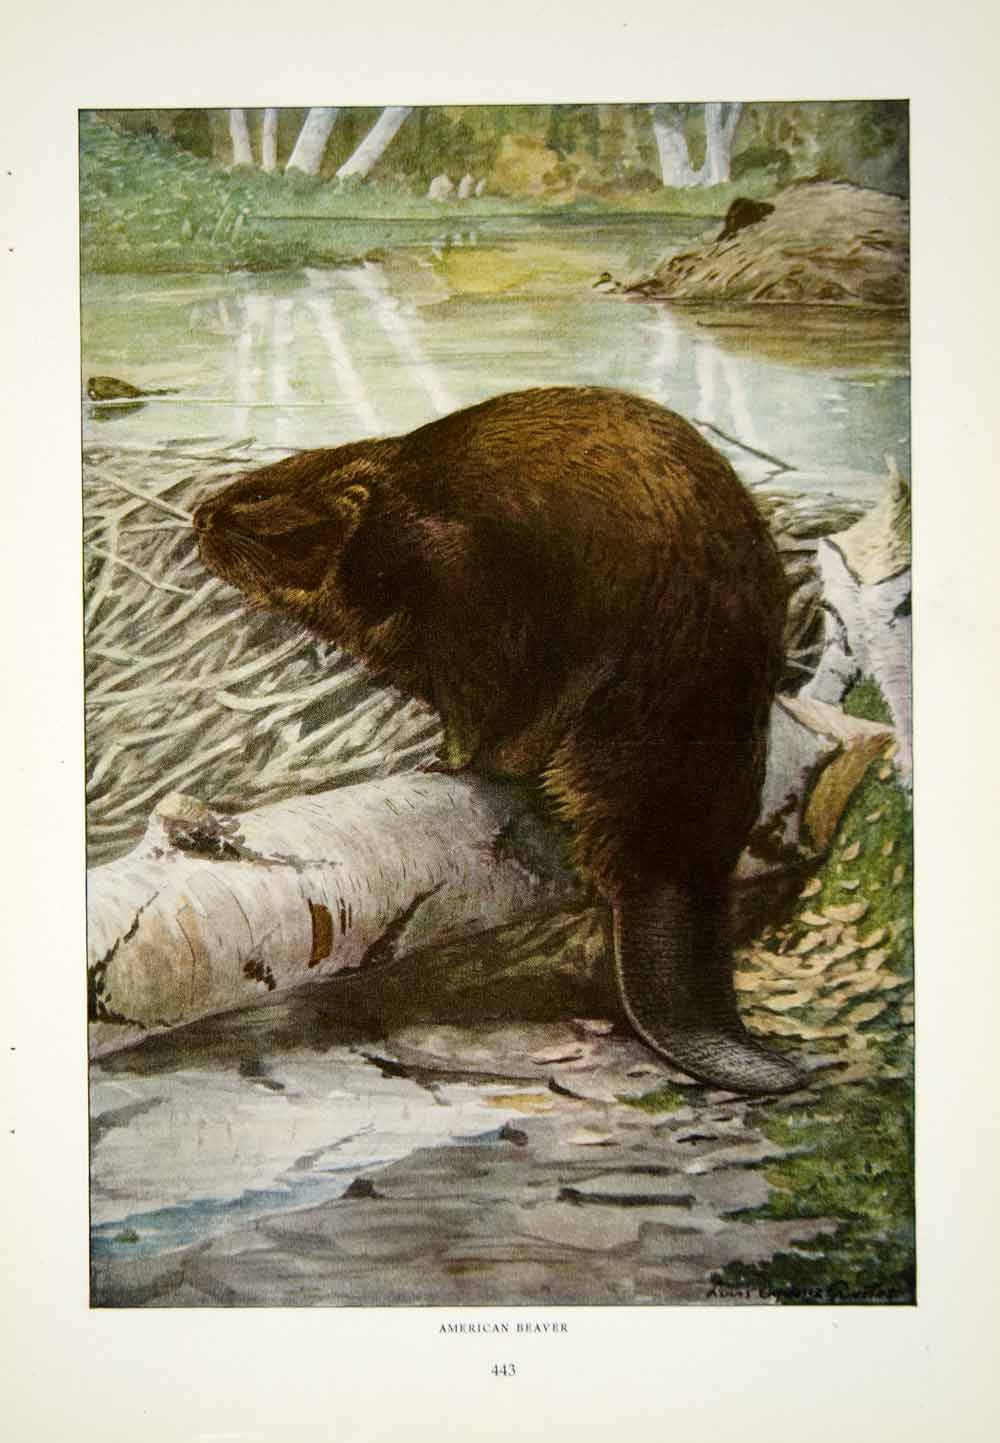 1916 Color Print American Beaver Wildlife Animal Louis Agassiz Fuertes Art YNG1